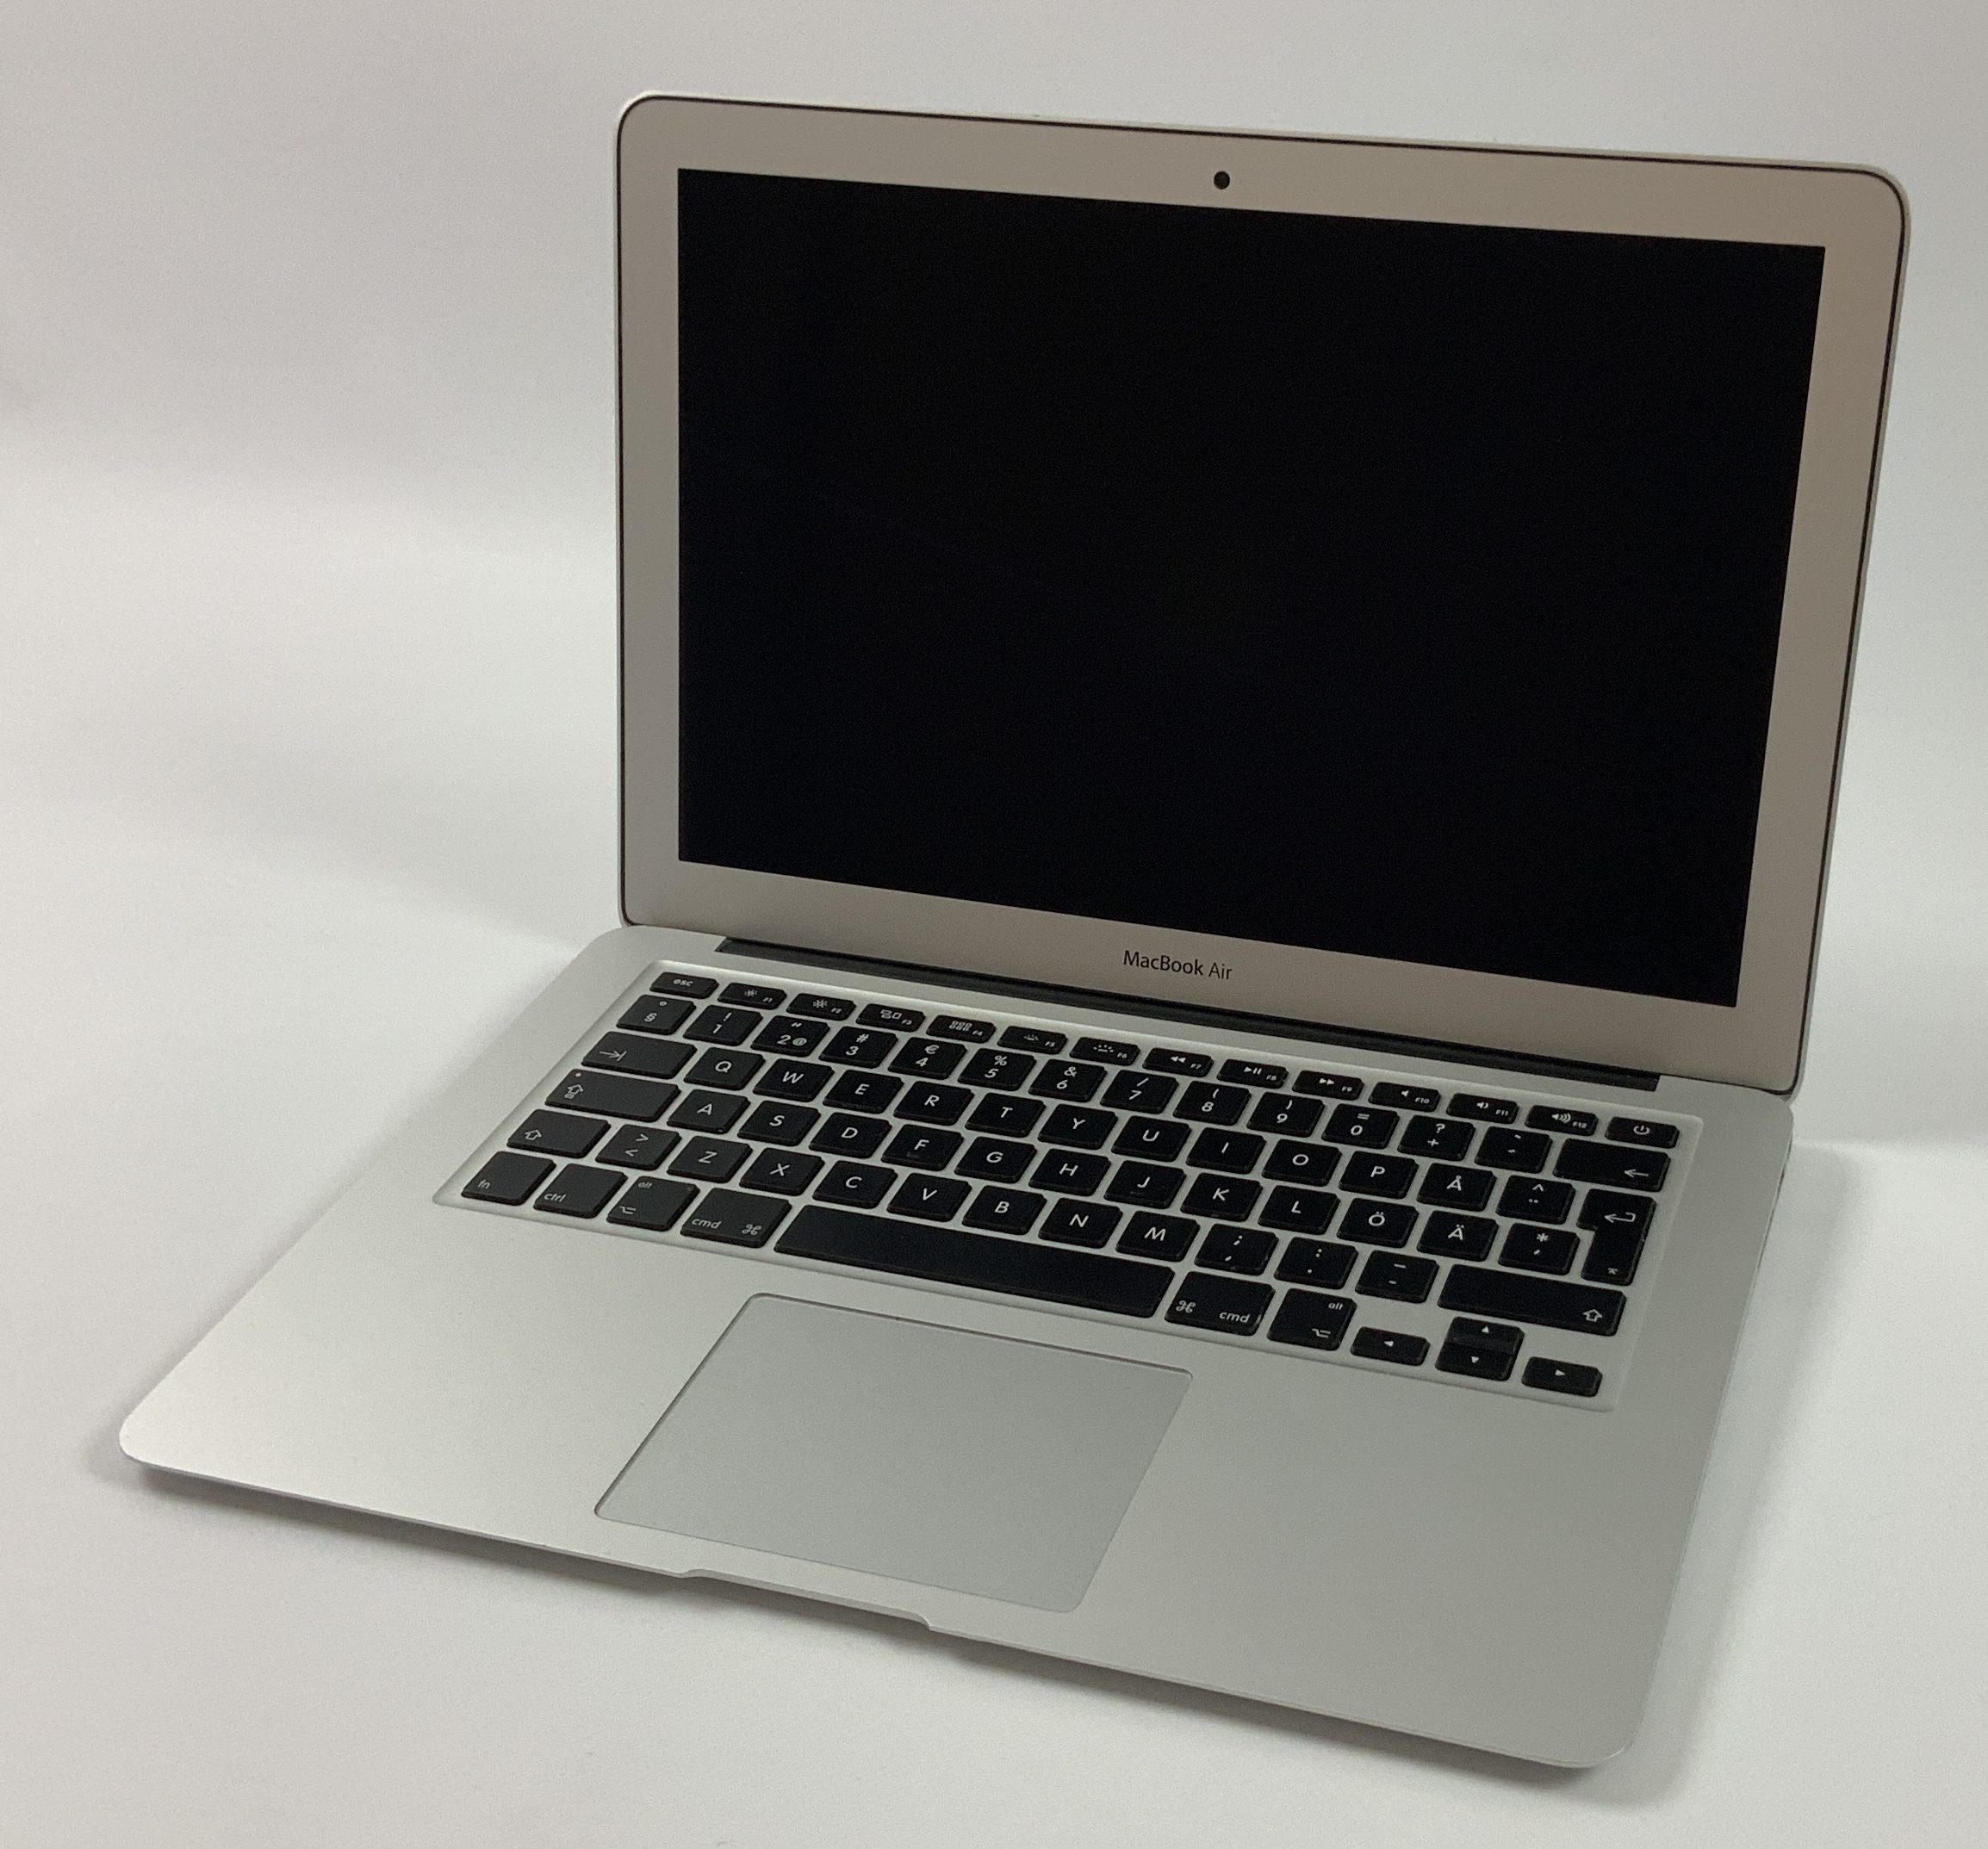 "MacBook Air 13"" Early 2015 (Intel Core i5 1.6 GHz 8 GB RAM 128 GB SSD), Intel Core i5 1.6 GHz, 8 GB RAM, 128 GB SSD, Bild 1"